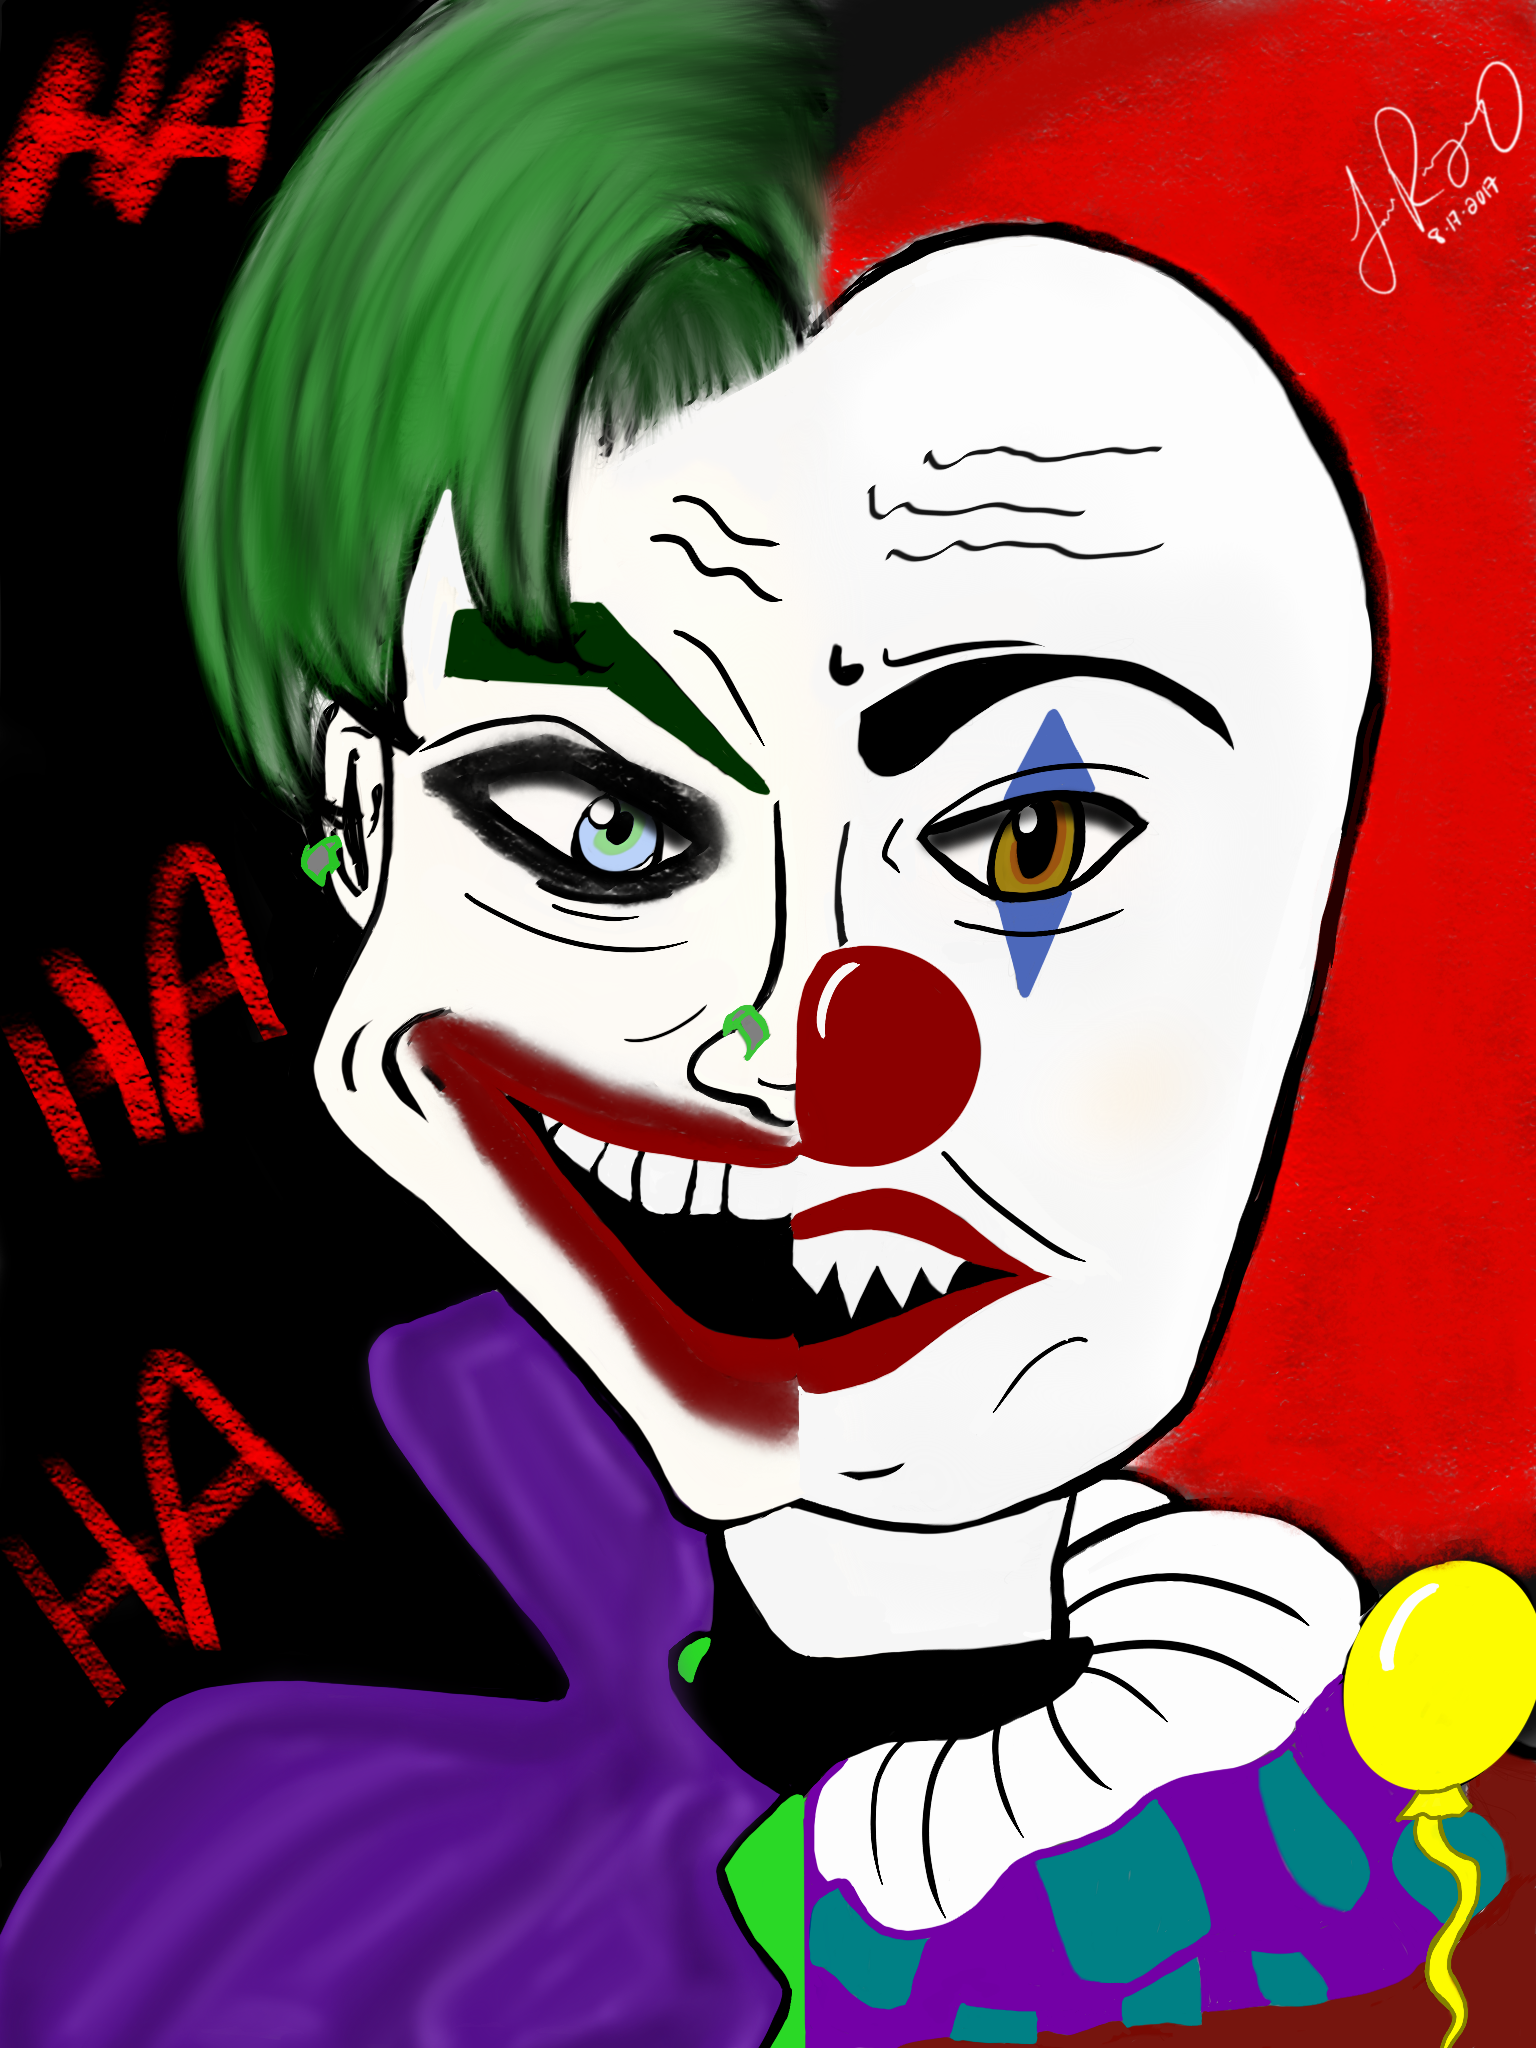 Joker ad Pennywise (IT)